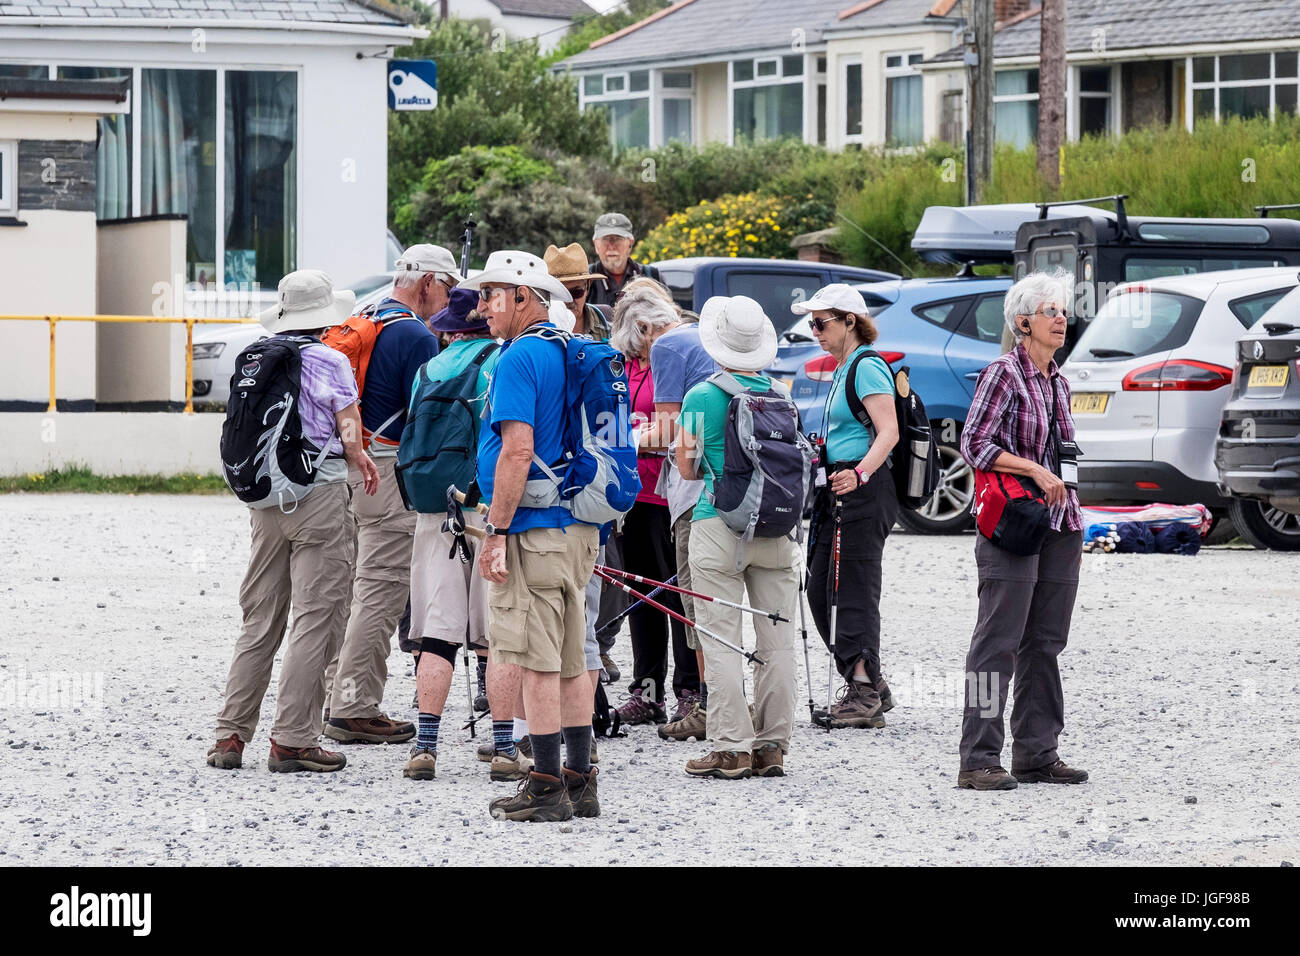 A group of walkers gathering in a car park. - Stock Image